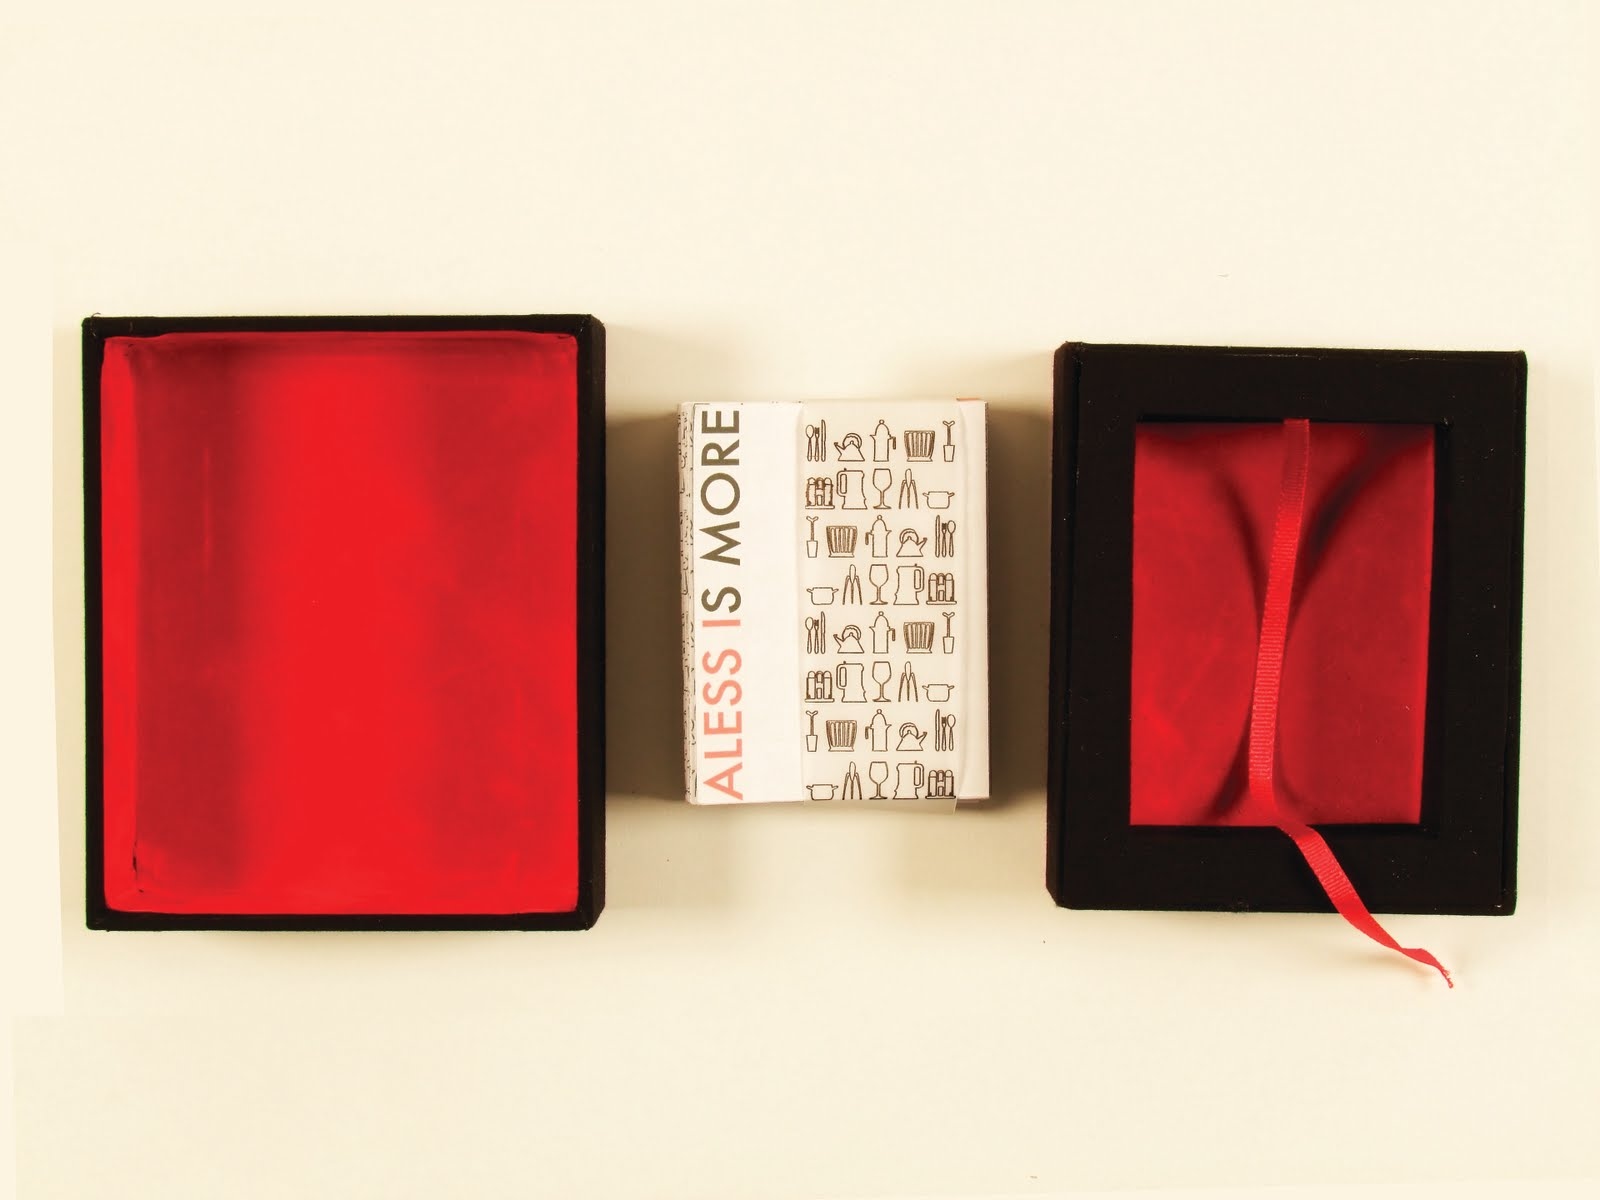 University Project: Alessi – The history of Alessi presented in a hand made box